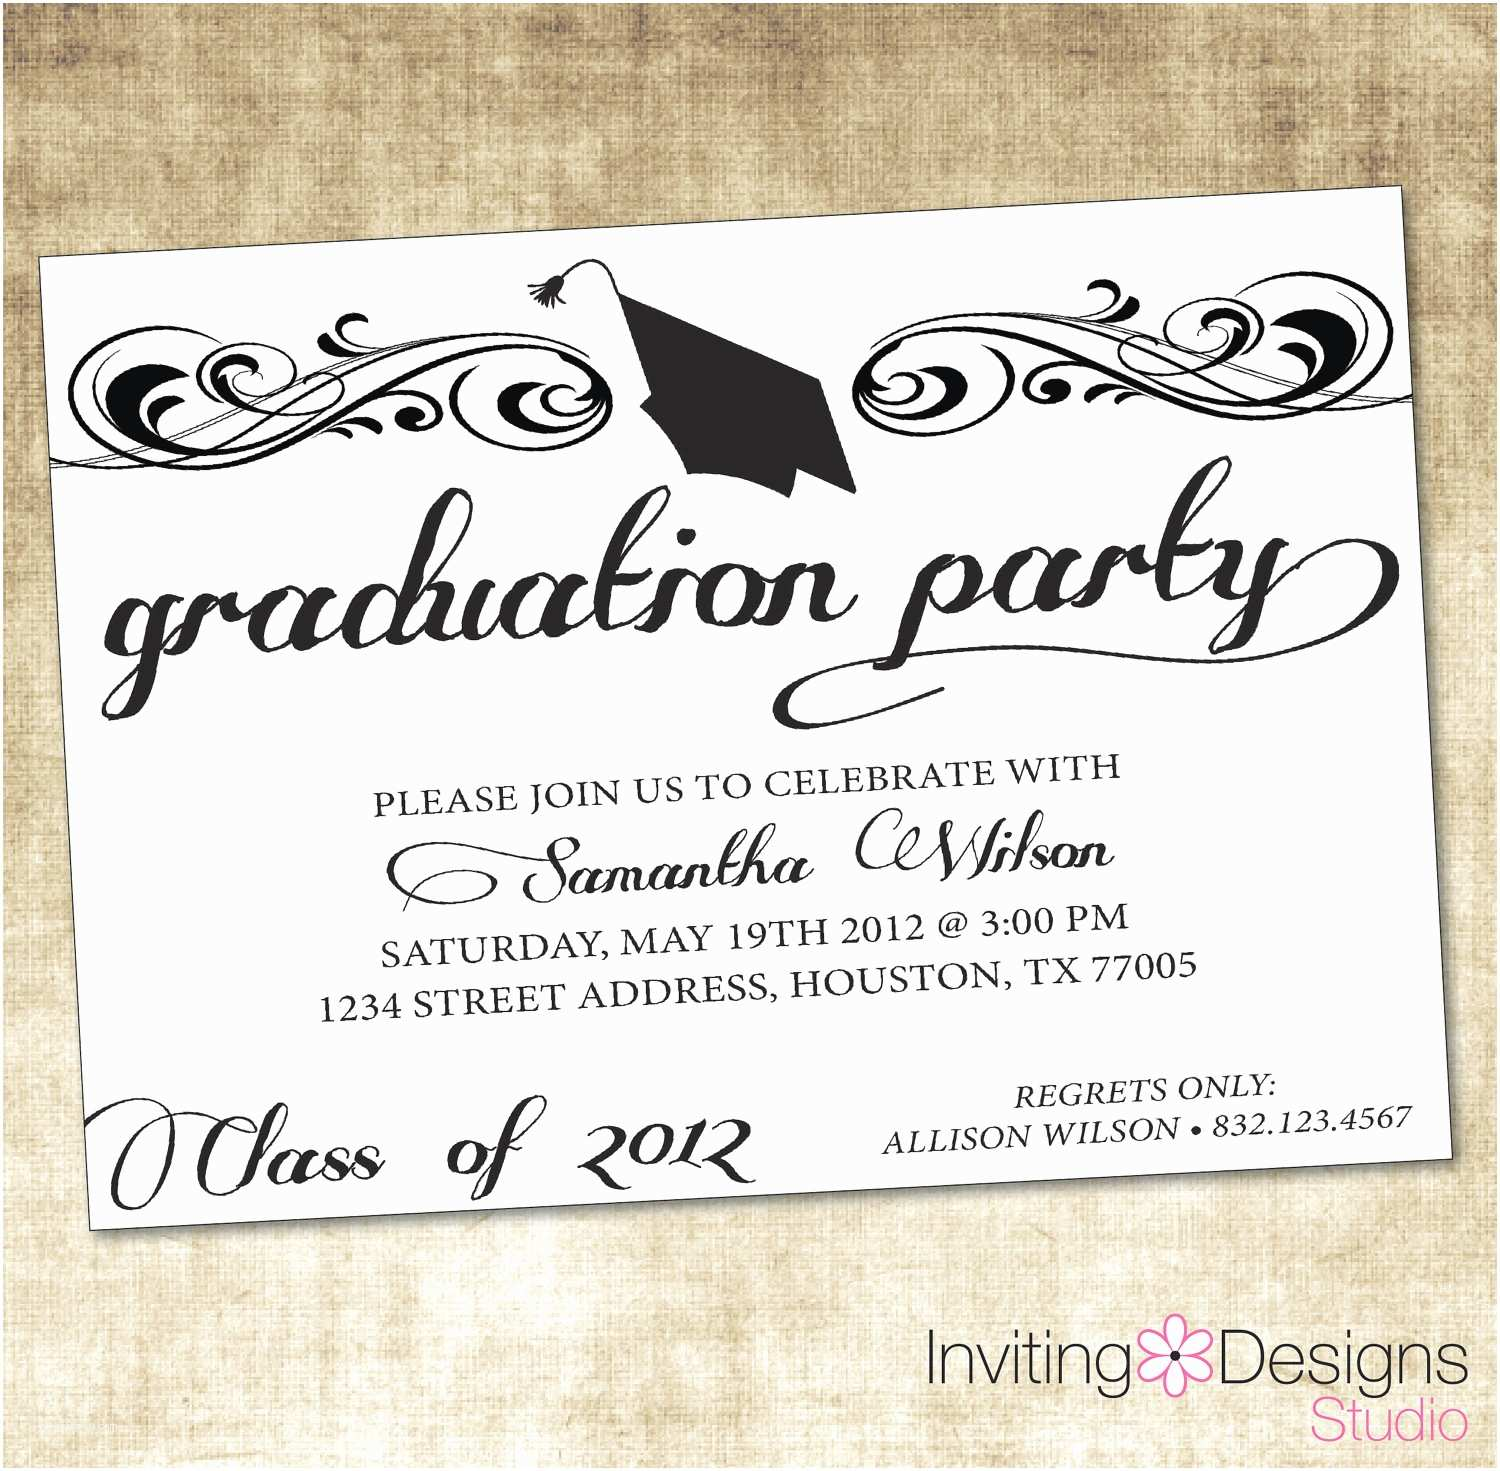 Sample Graduation Party Invitation Unique Ideas for College Graduation Party Invitations